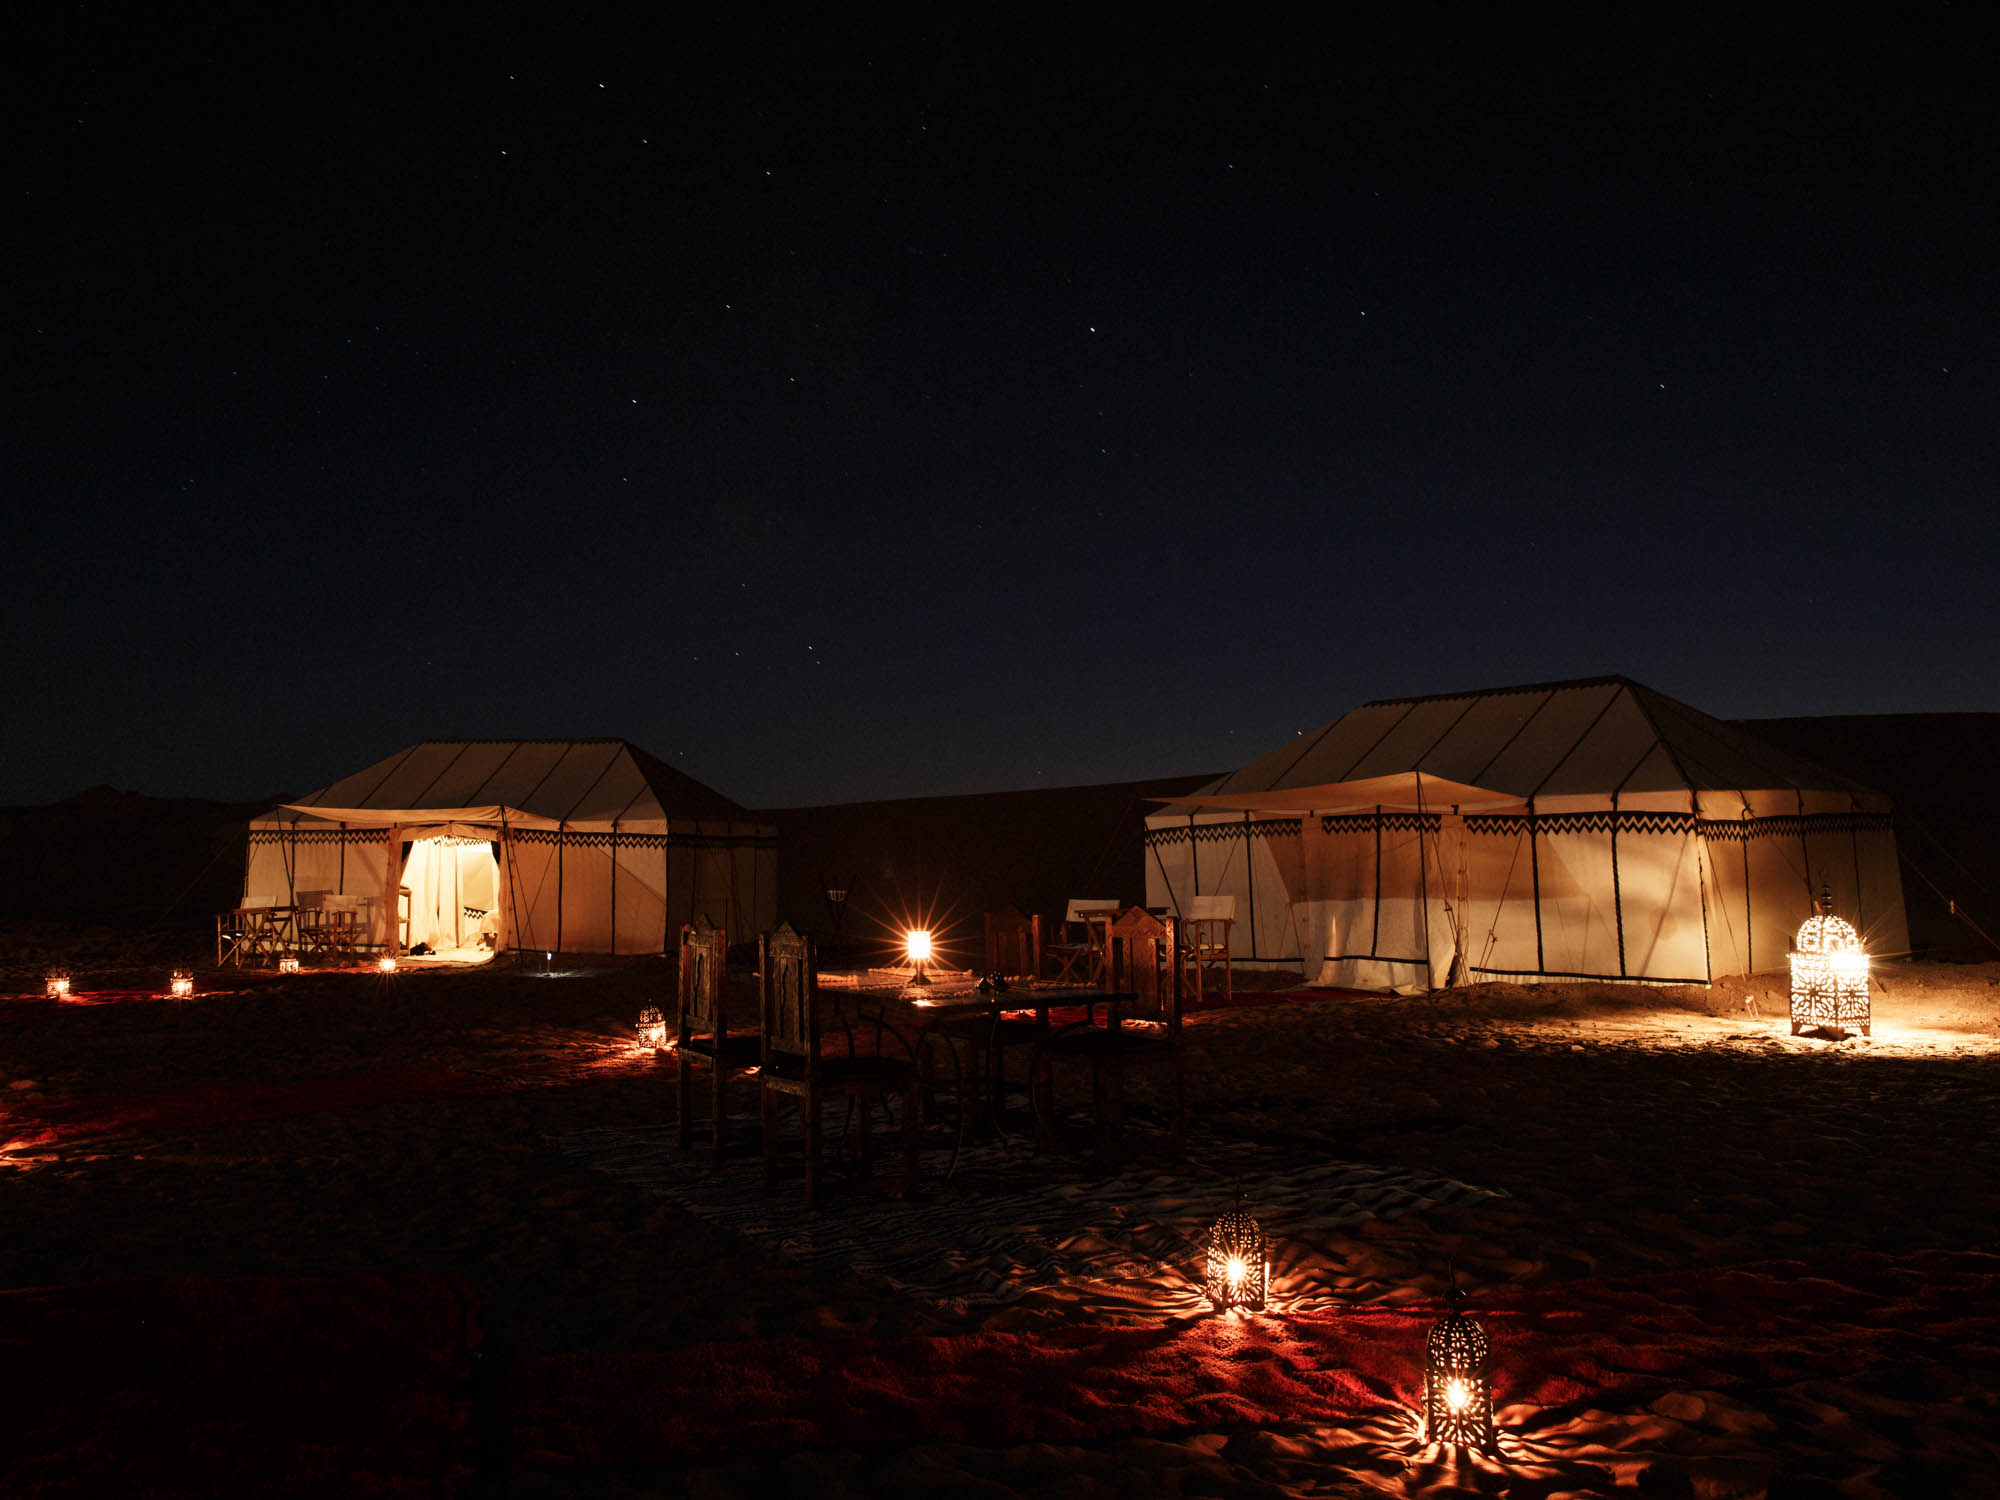 Candle Light at Nubia Luxury Desert Camp Morocco Under Clear Starlight Sky